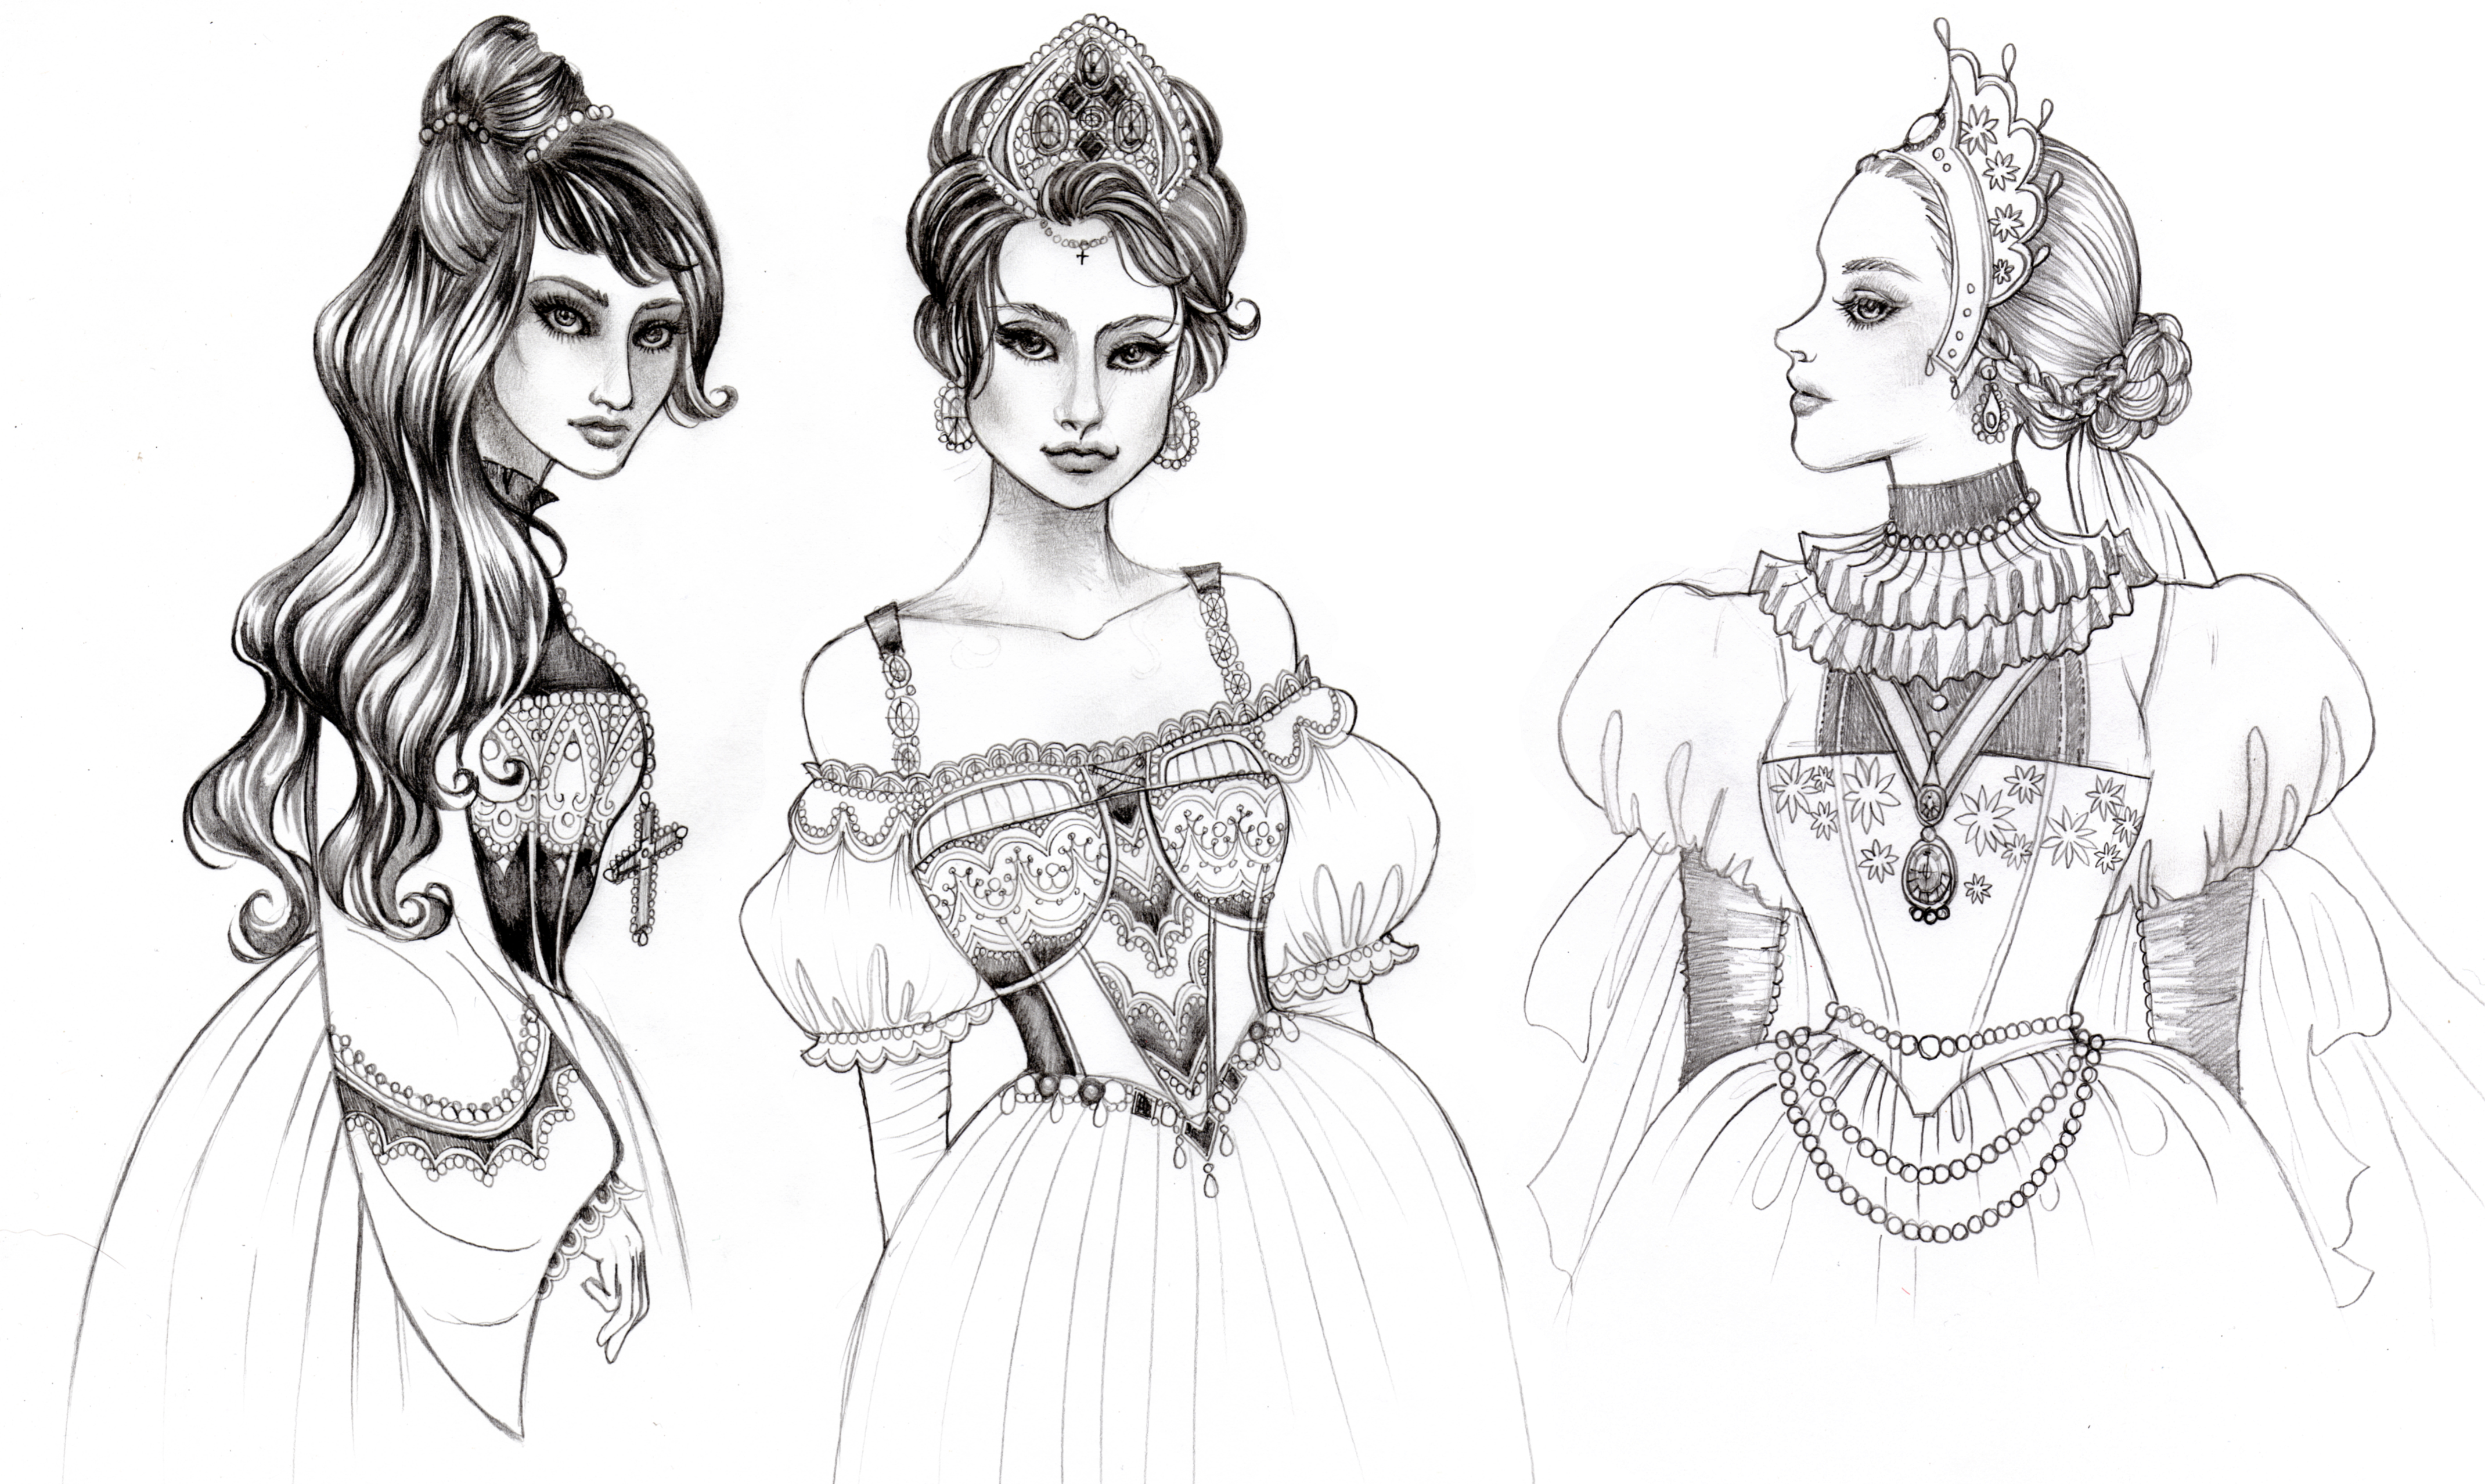 One of my favorite historical figures, the infamous Henry VIII...perhaps I had been watching The Tudors at this time.  Here I've depicted a fantasy illustration of Katherine of Aragon, Anne Boleyn, and Jane Seymour, the first three wives of Henry.